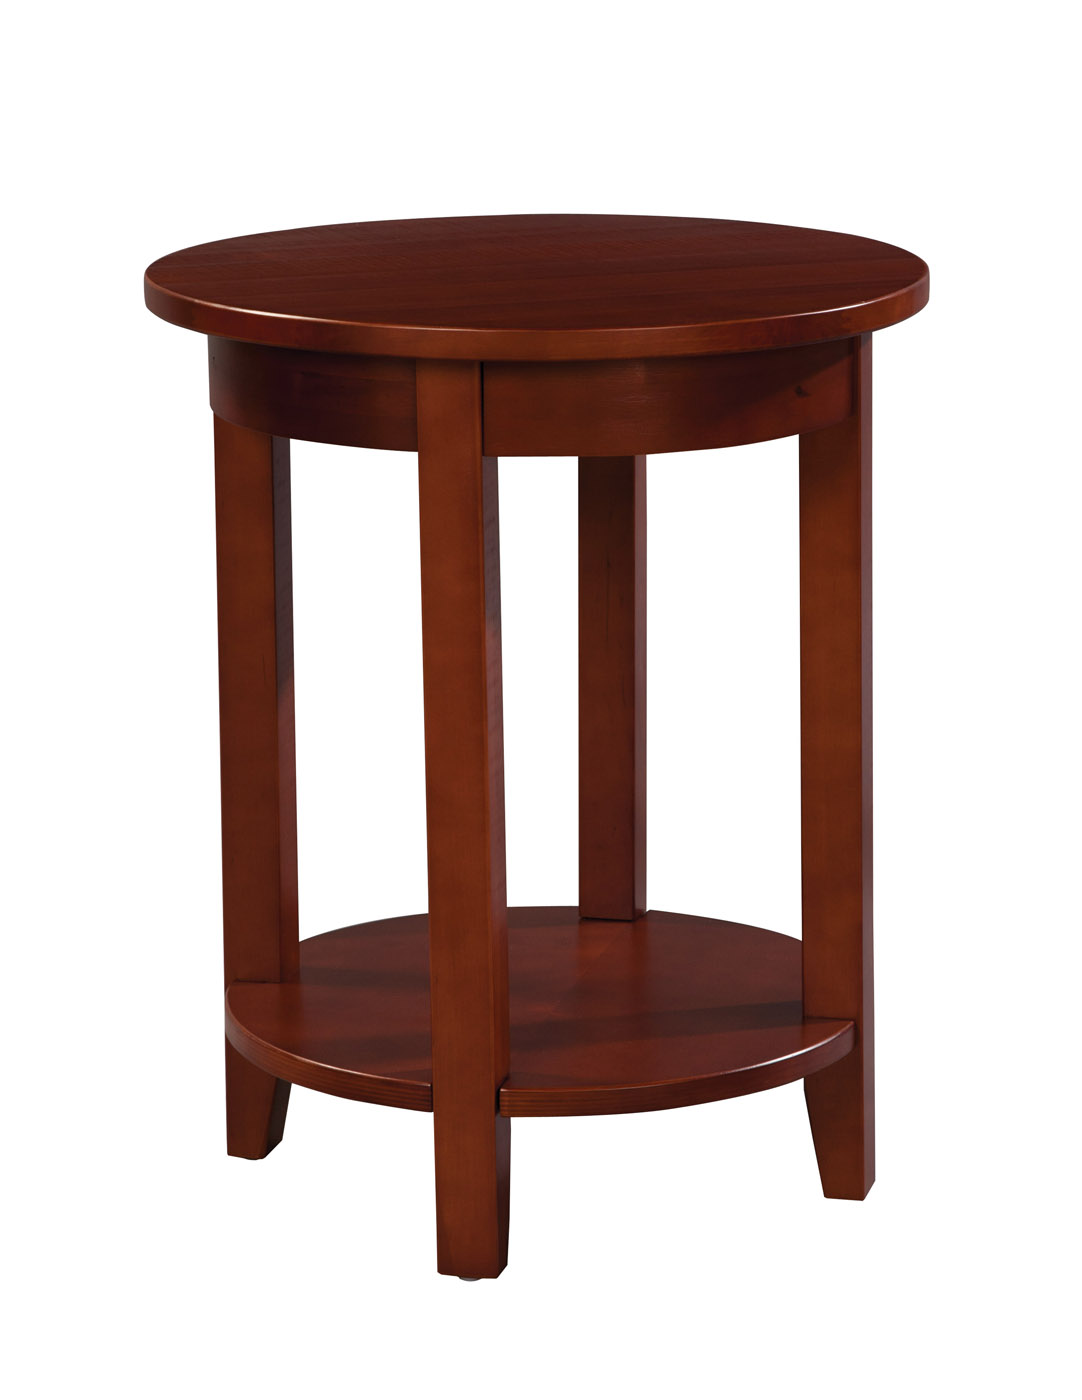 round accent table cherry shaker cottage small couches for spaces furniture dining long cabinet west elm coffee side repurposed wood end iron garden lamps sydney asian style